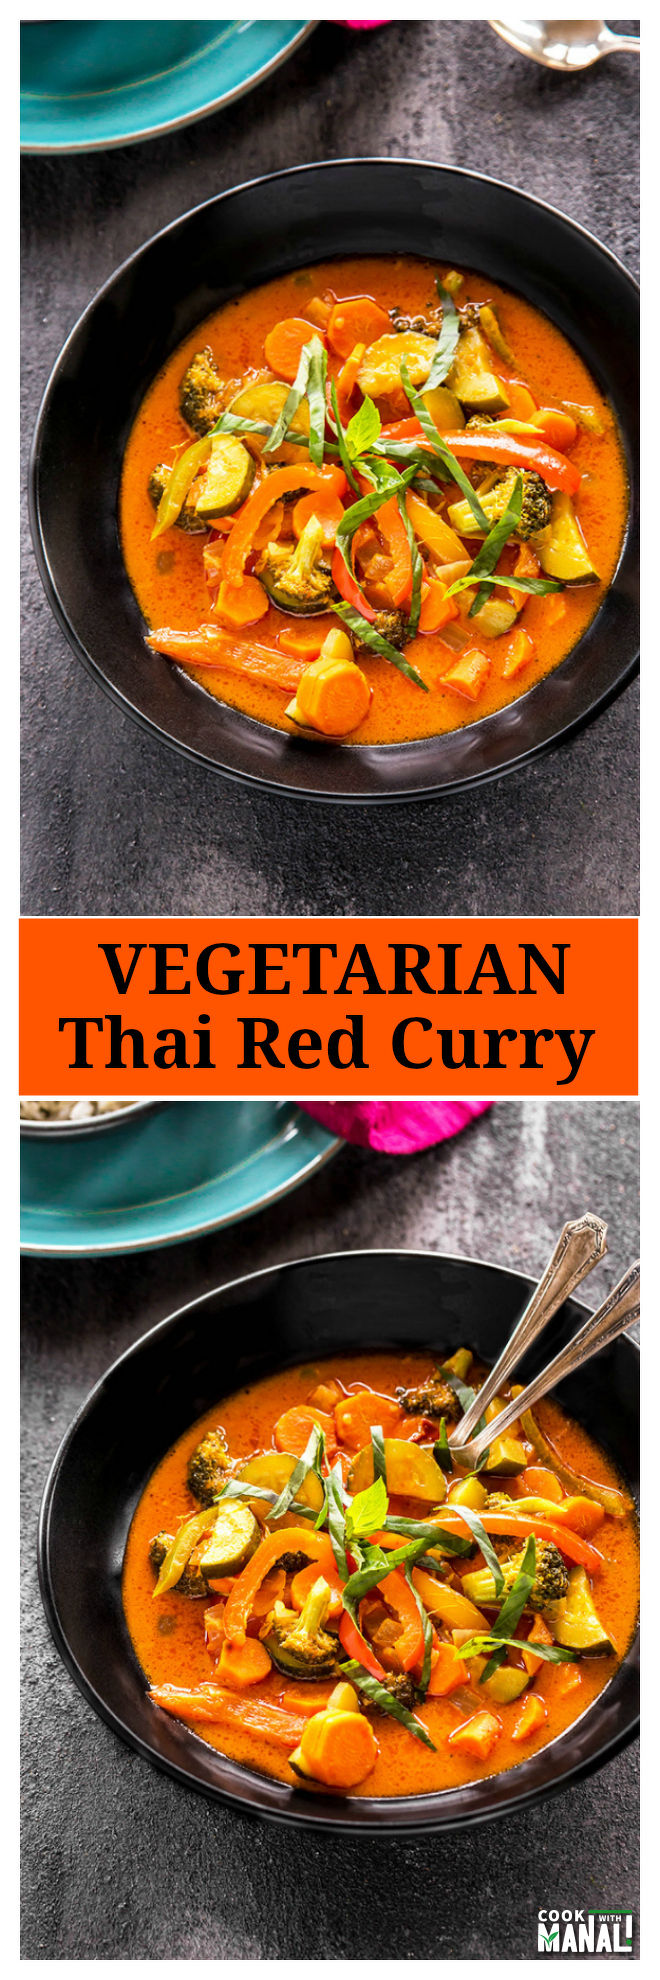 Vegetarian Thai Red Curry + VIDEO - Cook With Manali